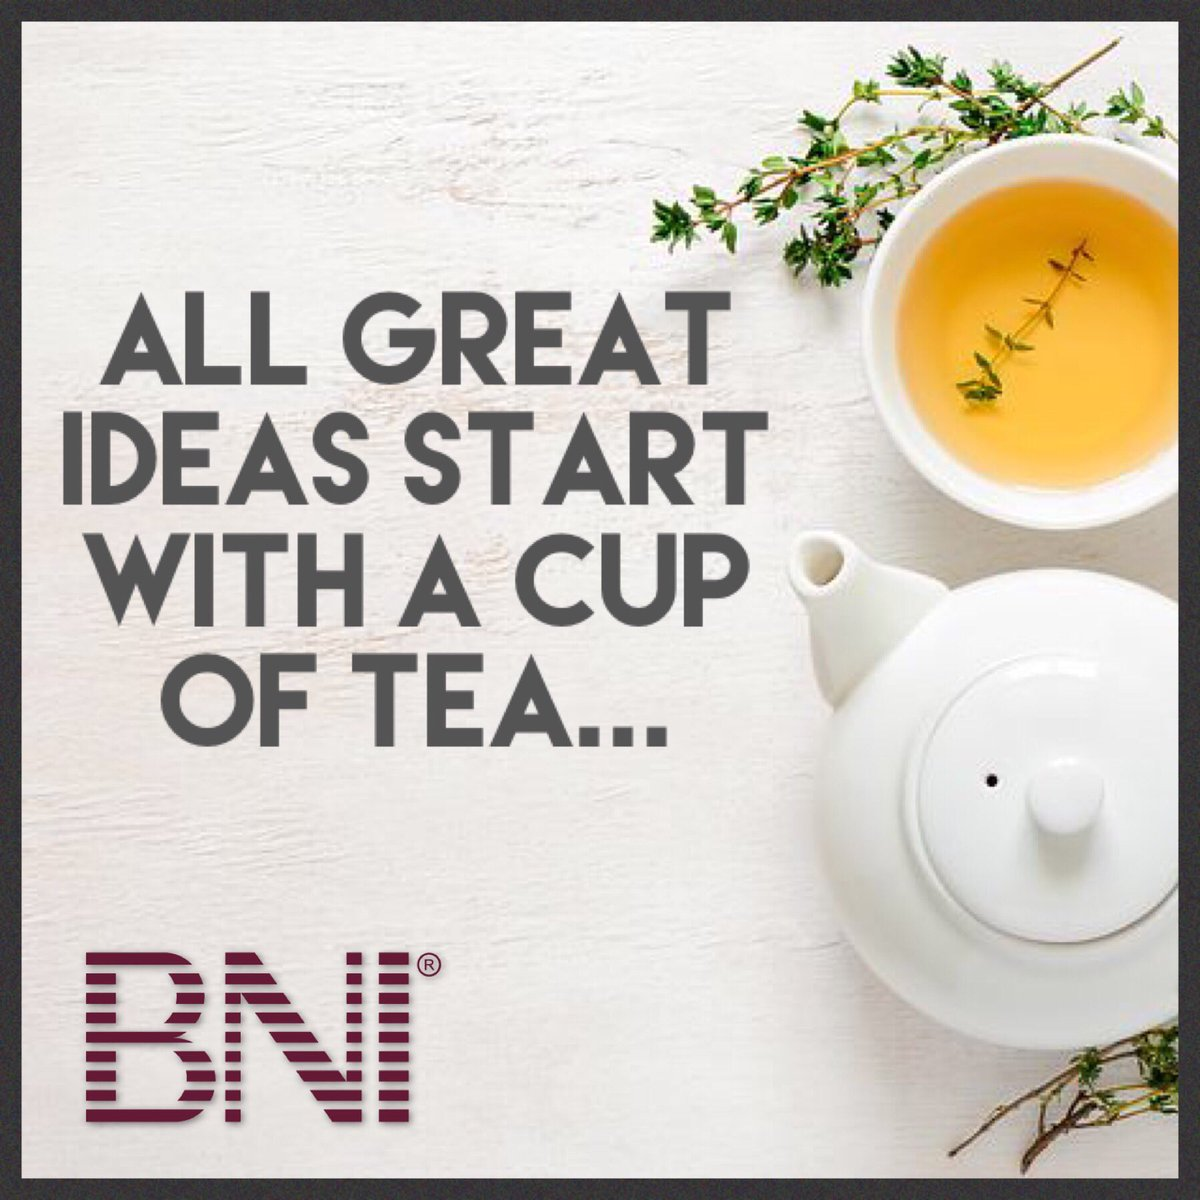 Big news is coming and we cannot wait to share! We have another exciting project on the horizon...the countdown has now officially begun!  Will you be joining us? OpportuniTEA awaits! #Bni  #giversgain  #bnifamily  #colab  #colaboration  #business  #bignews  #opportuniTEA